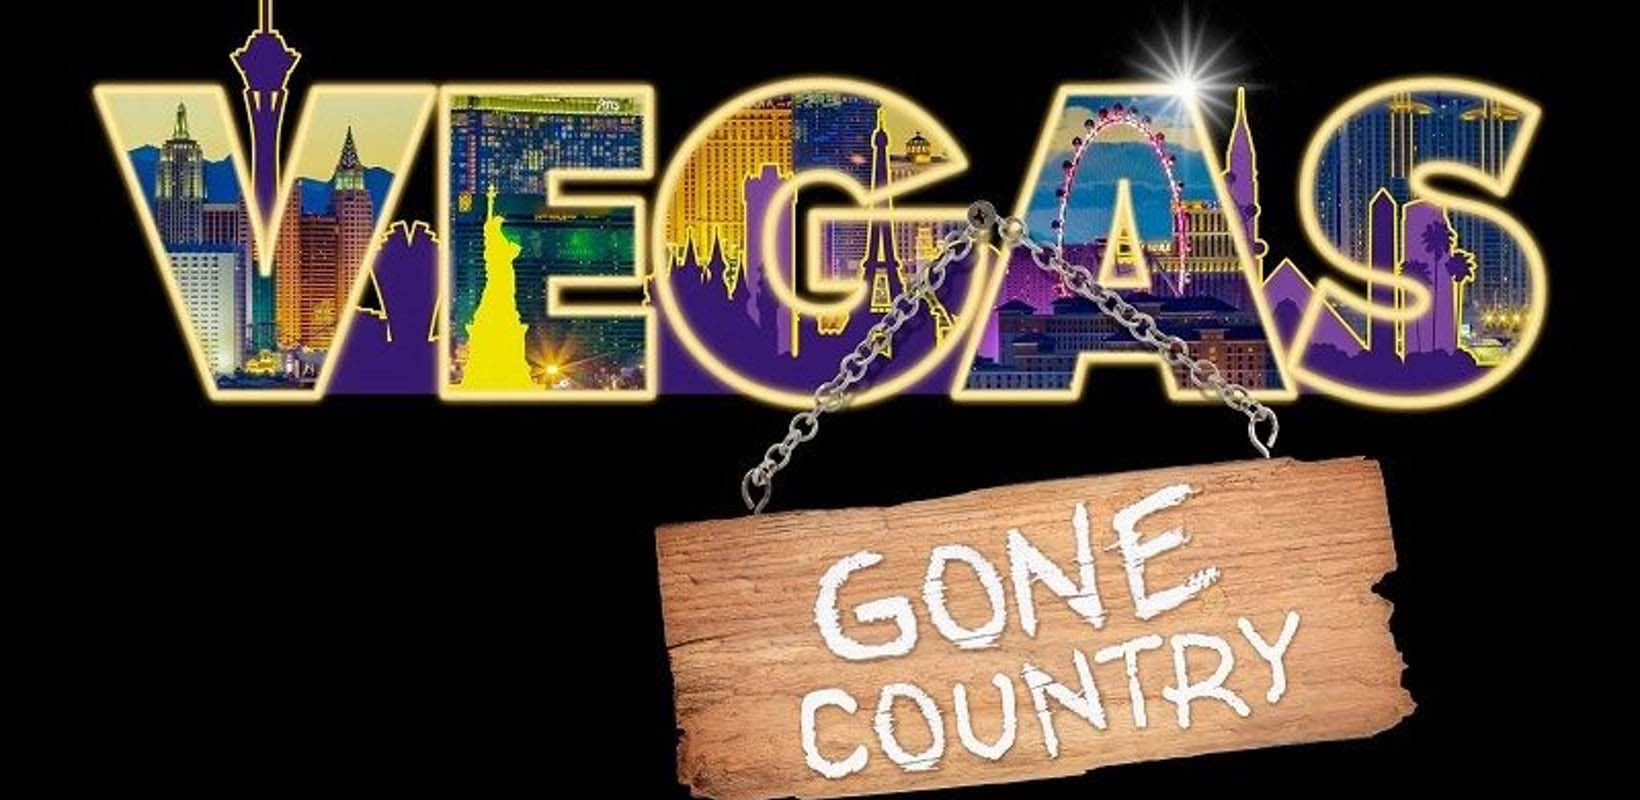 Tickets to Vegas Gone Country